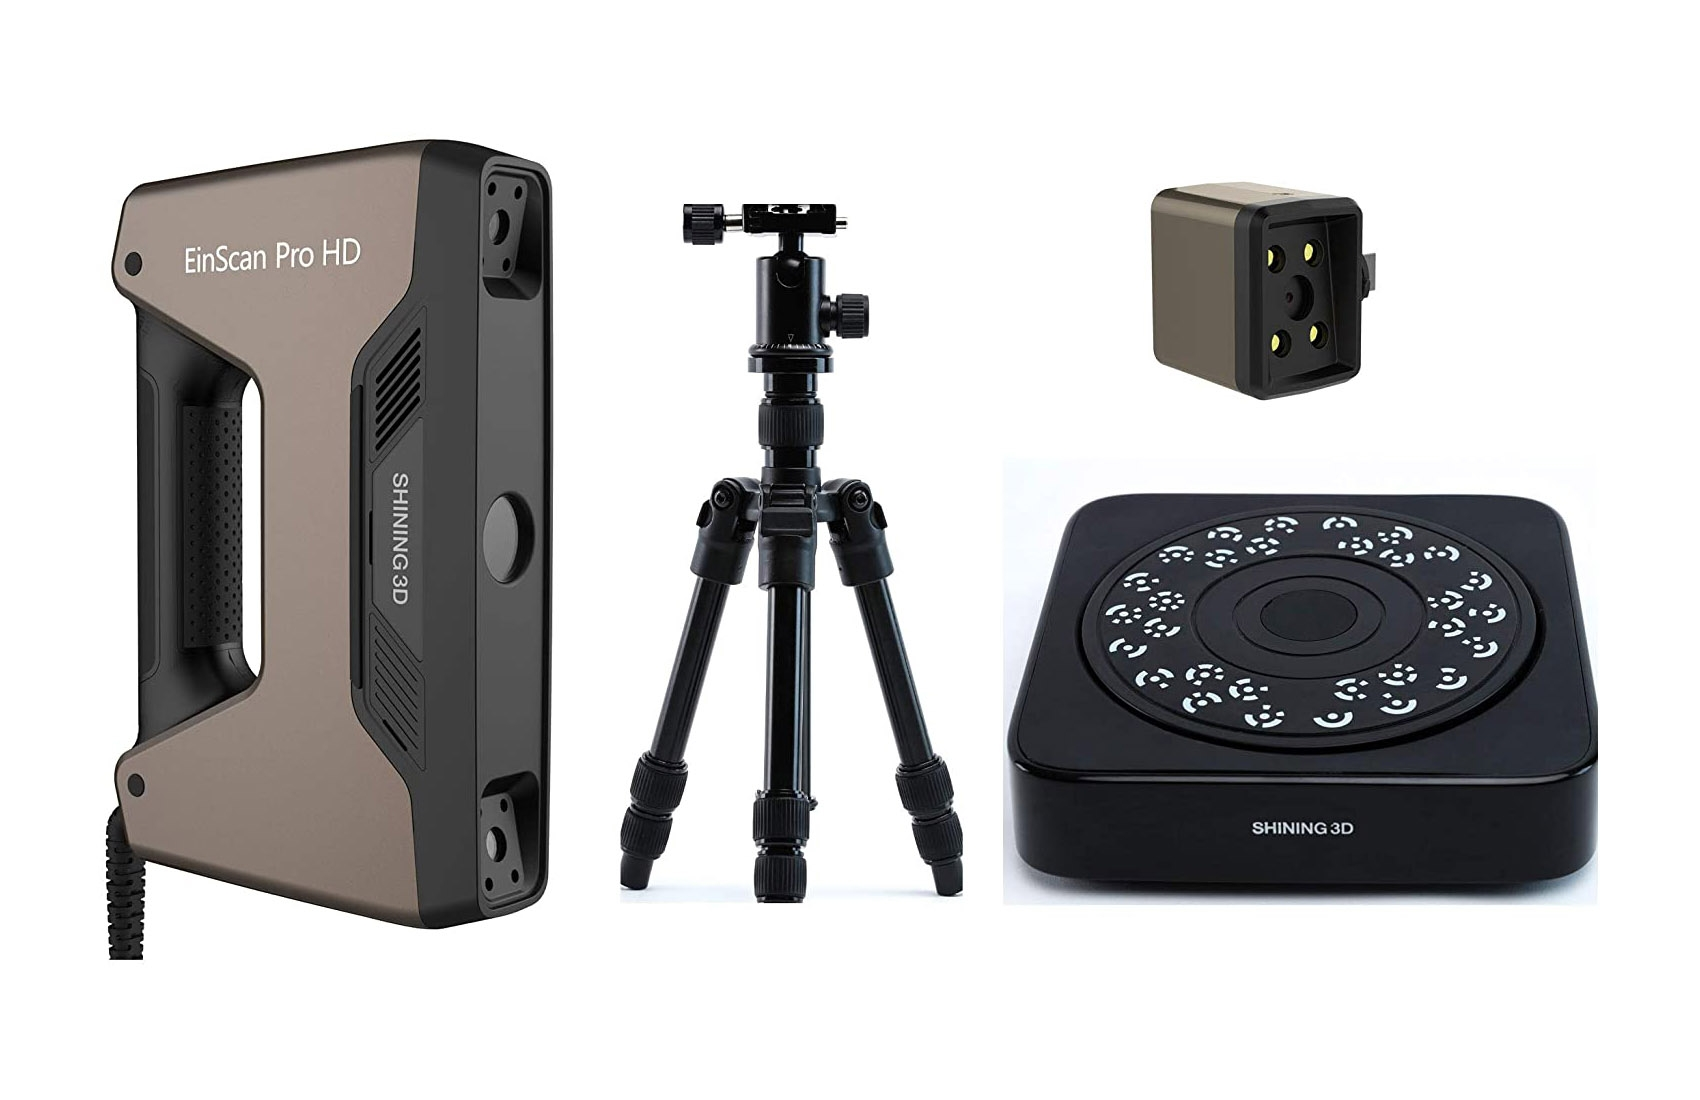 EinScan Pro HD 3D Scanner with Turntable, Tripod, Color Pack, 0.2mm Resolution, 0.04mm Accuracy